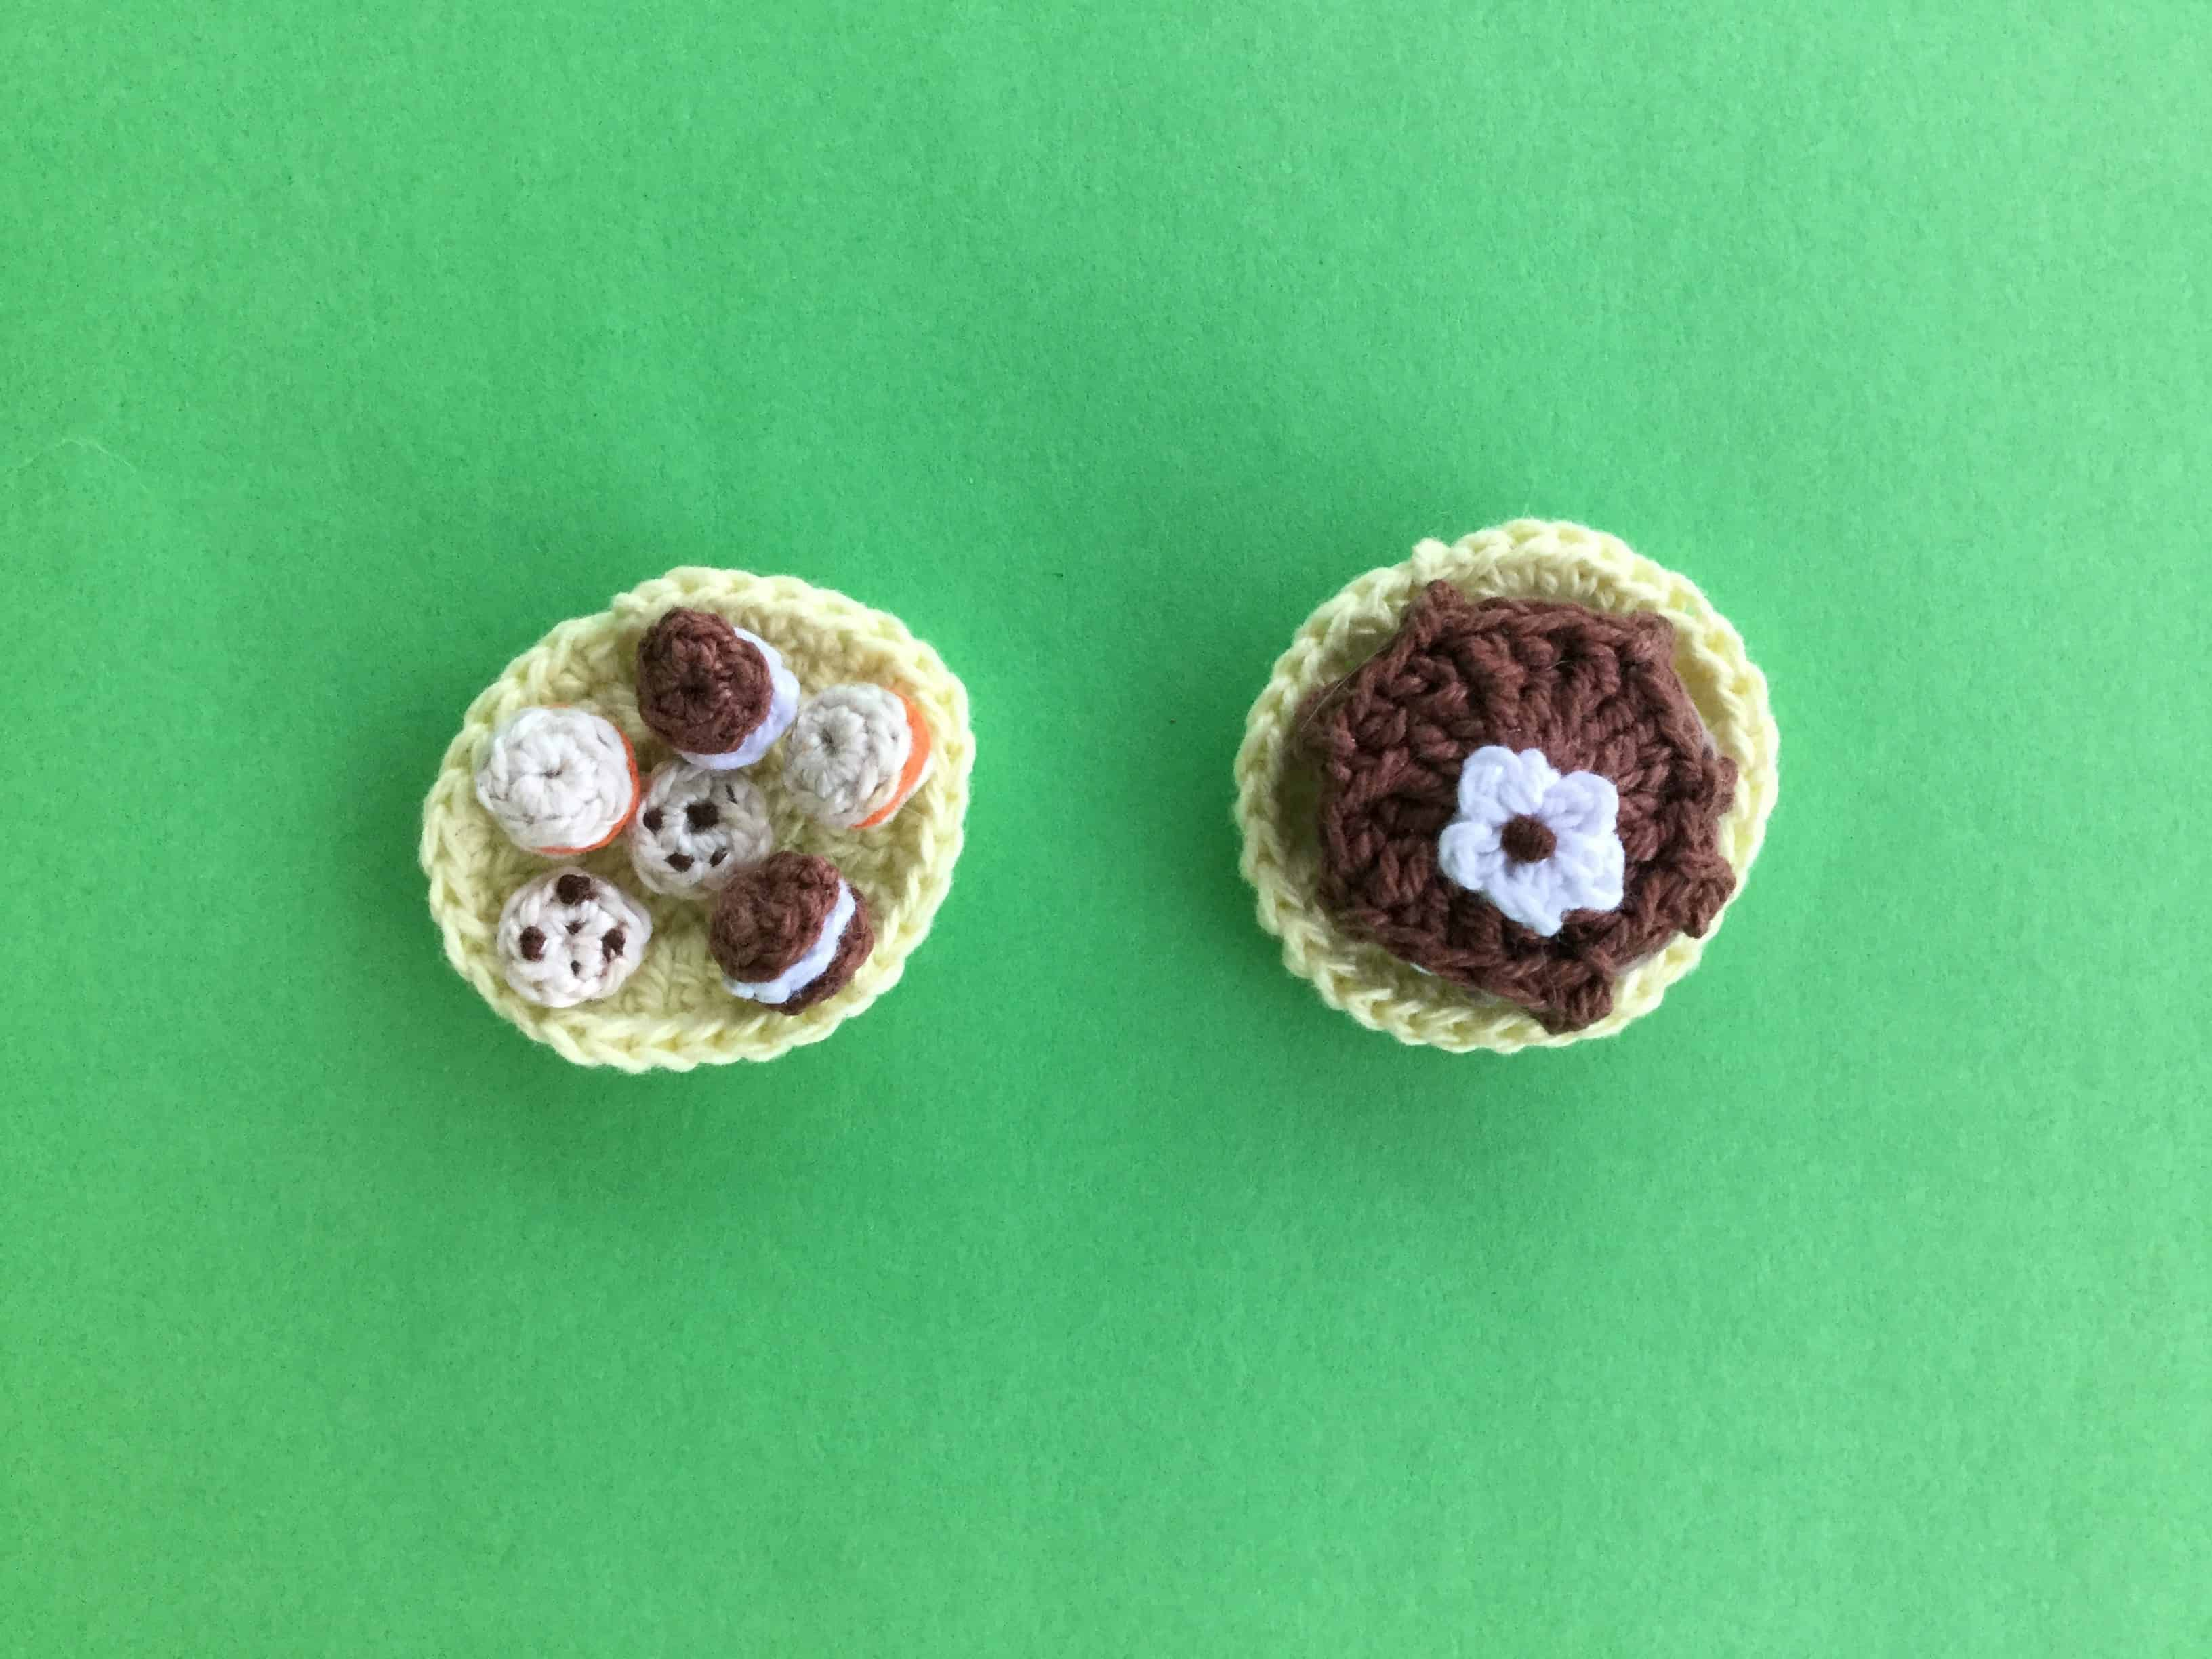 Finished crochet food for blanket landscape